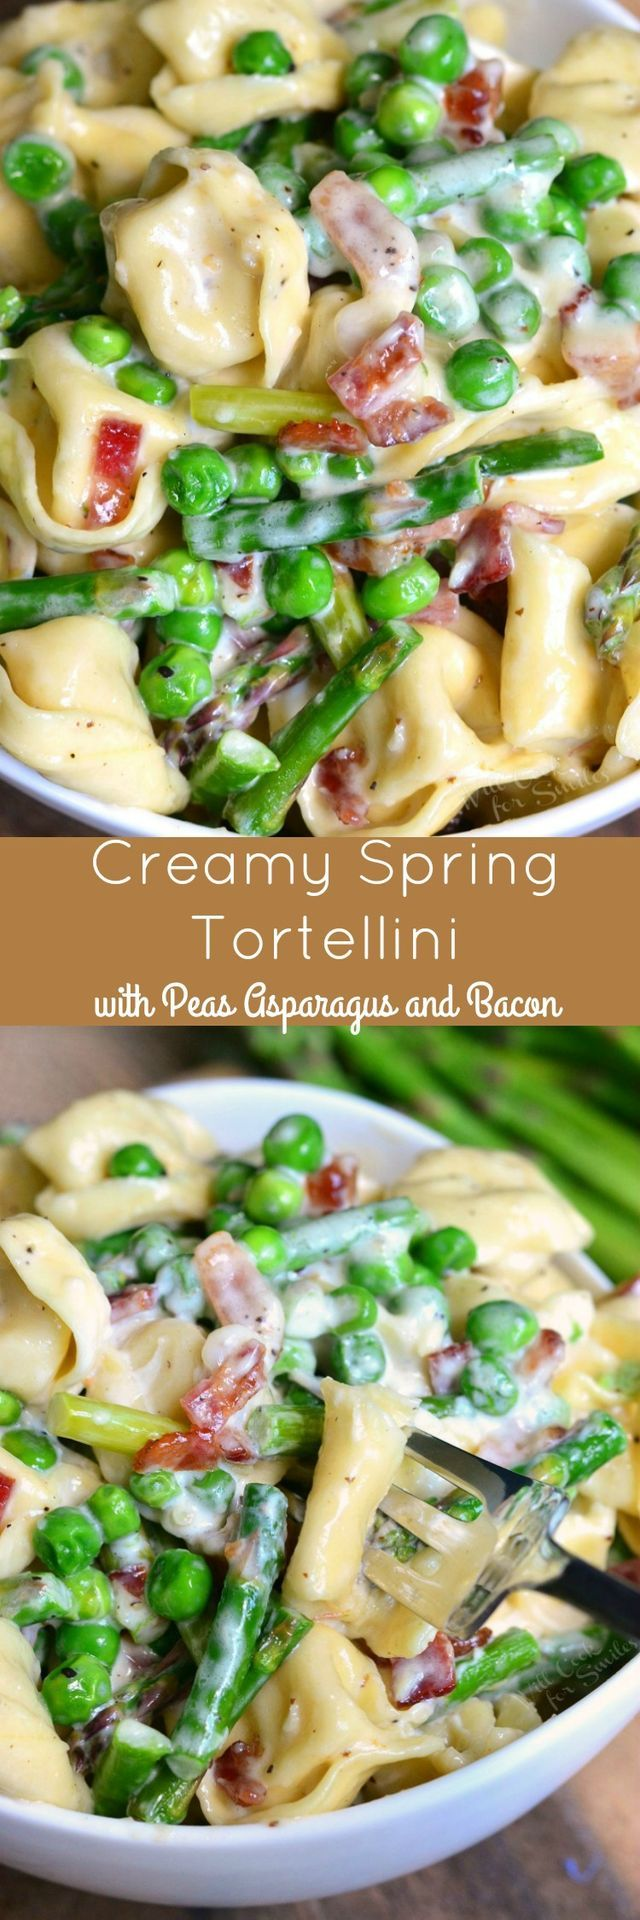 Delicious creamy tortellini dish made comforting with Parmesan cream sauce and crispy bacon and it's also loaded with peas and asparagus. This is an easy dinner that will only take about 30 minutes to